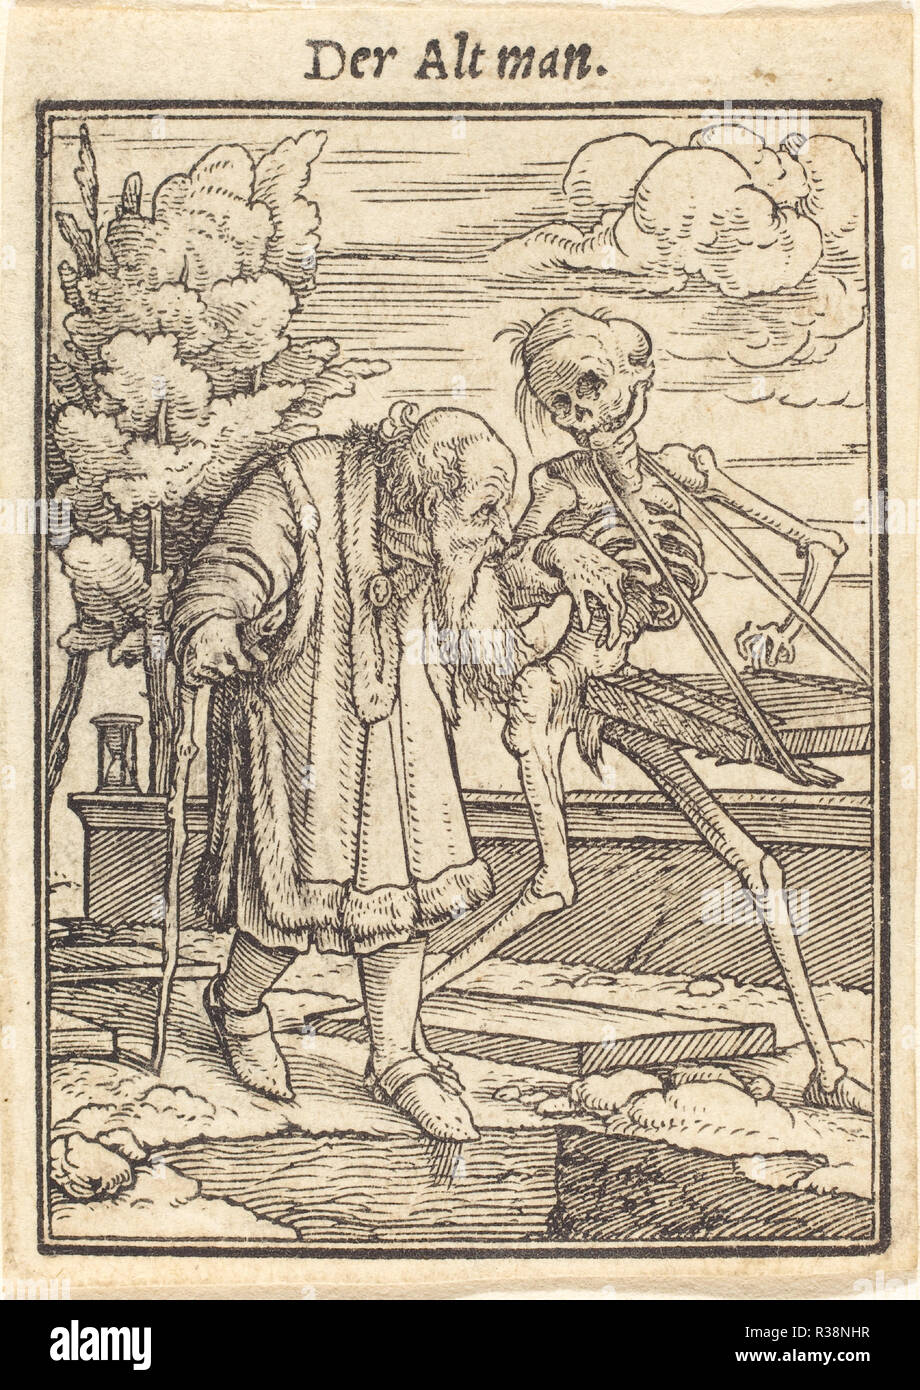 Old Man. Medium: woodcut. Museum: National Gallery of Art, Washington DC. Author: Hans Holbein the Younger. - Stock Image